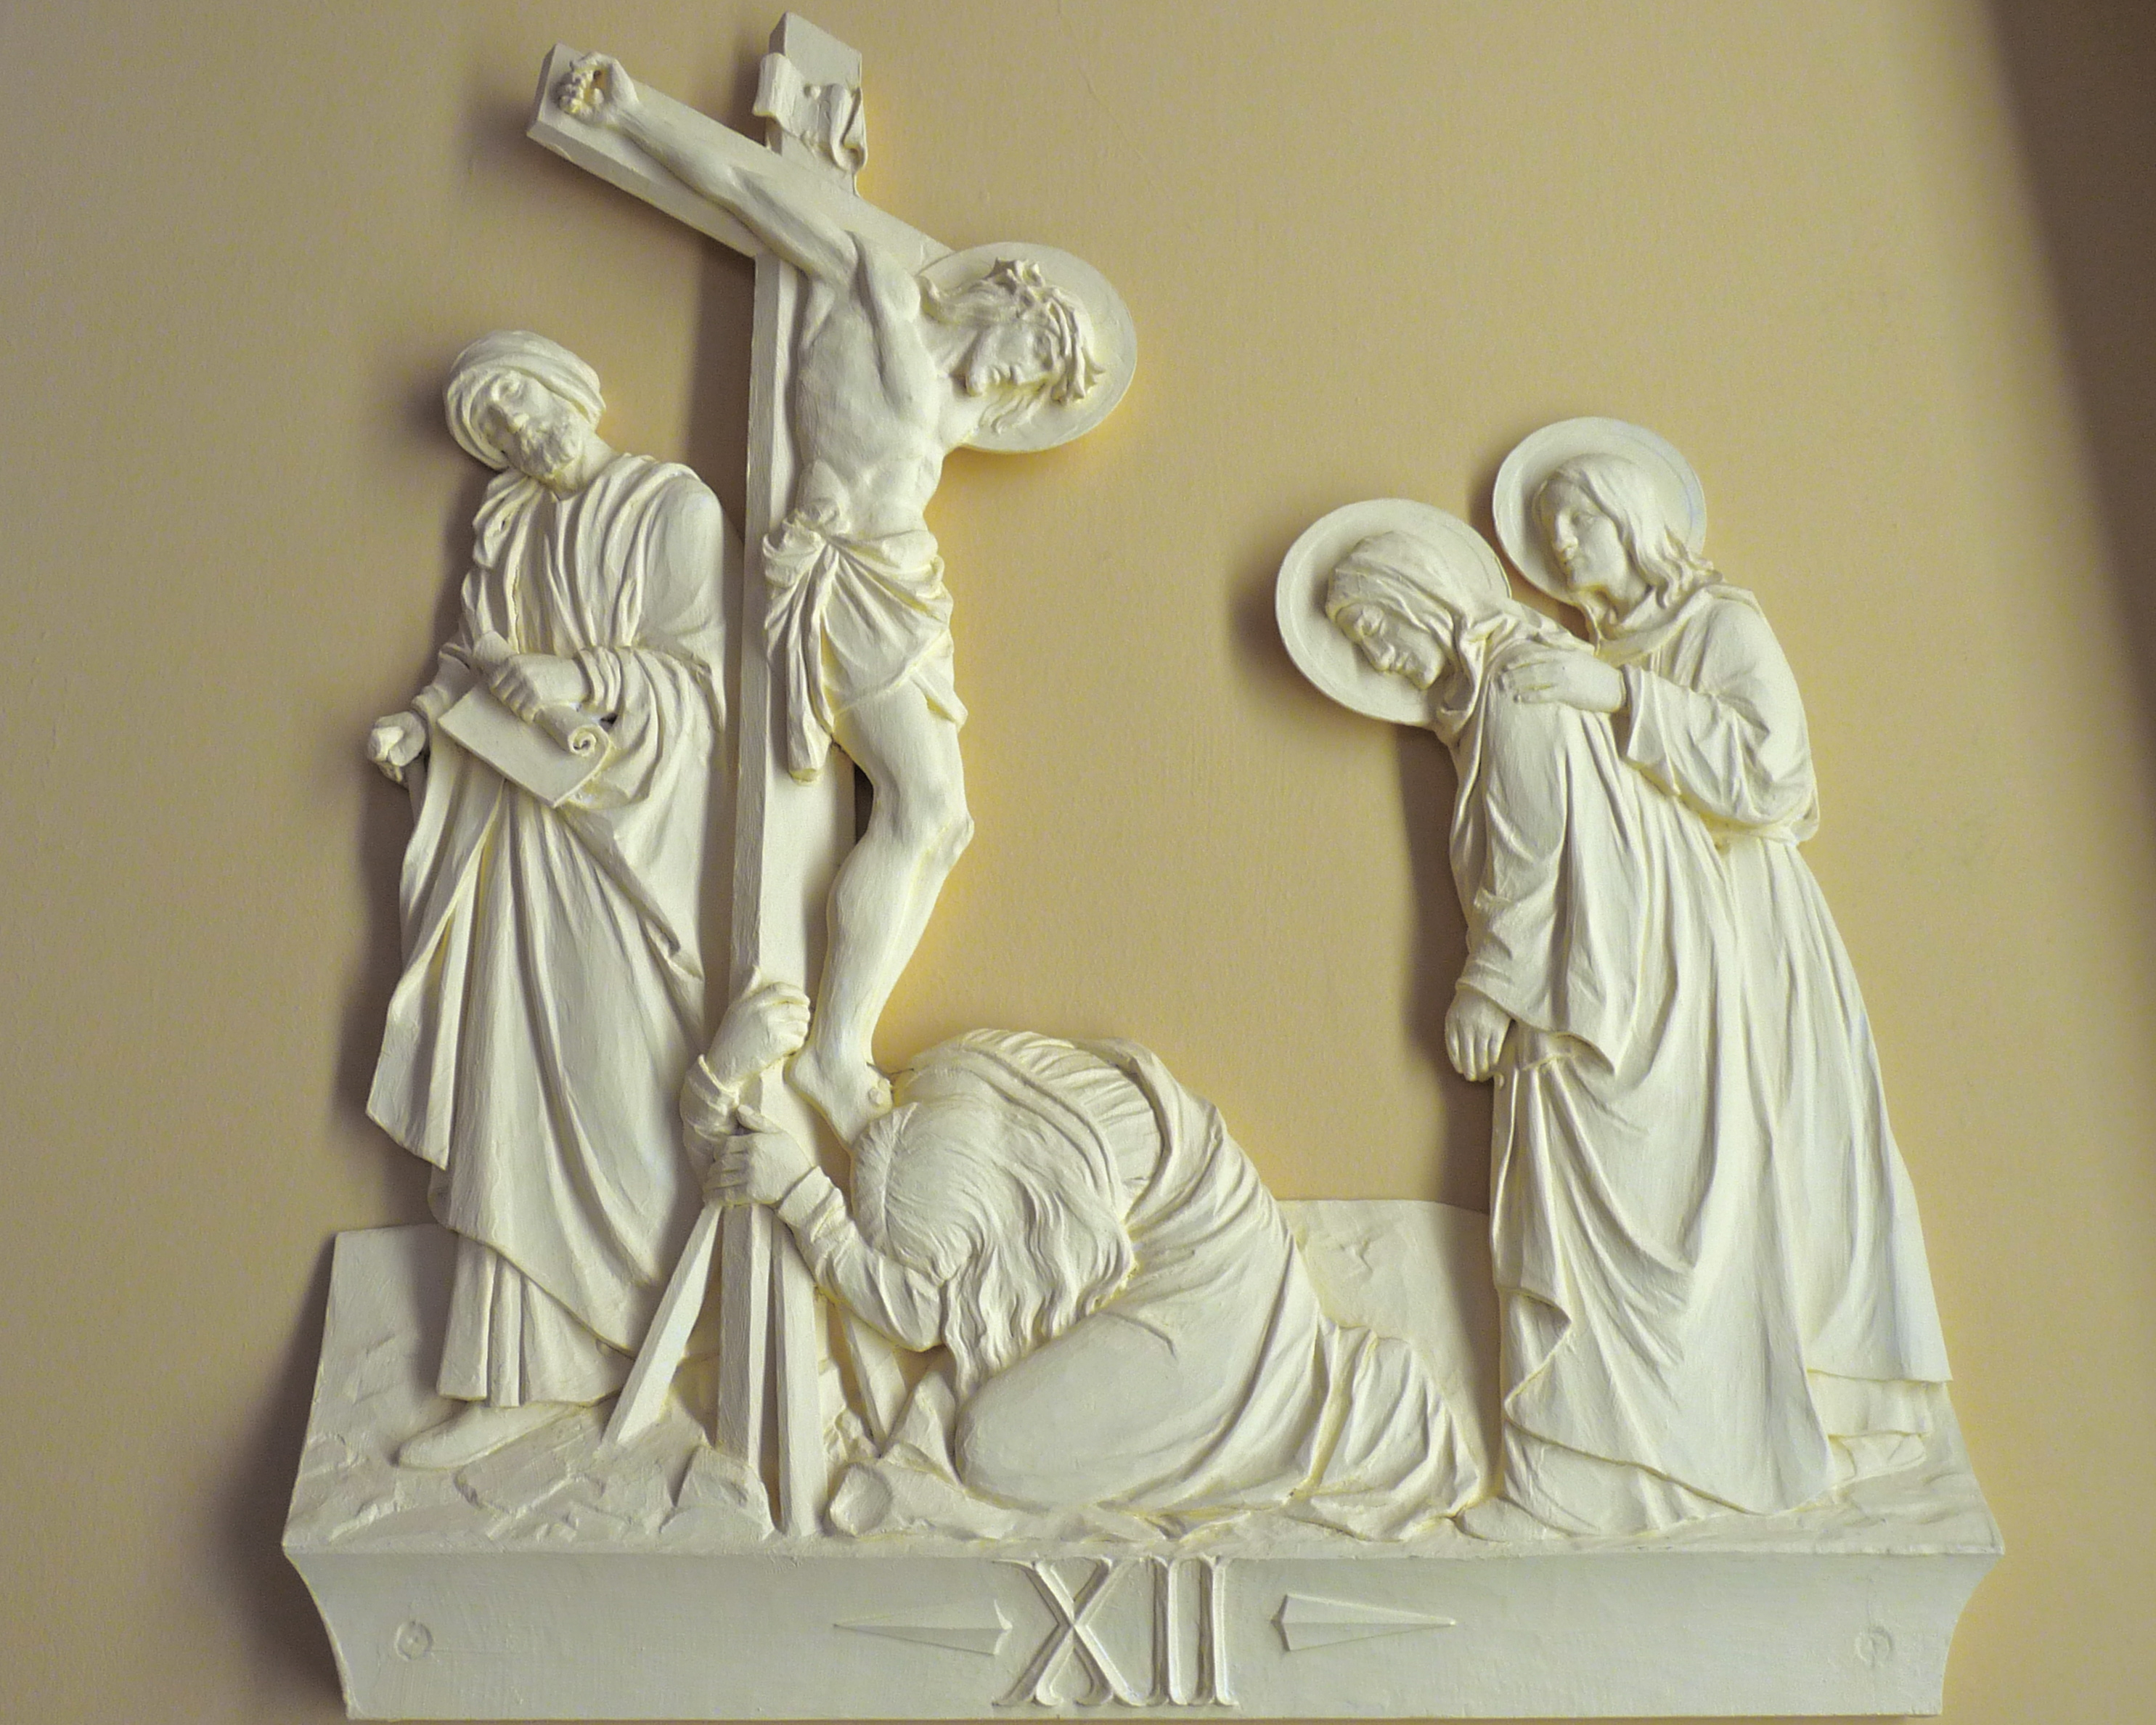 revster's ramblingsMenuStations Of The Cross – TraditionalPost navigationPhotos